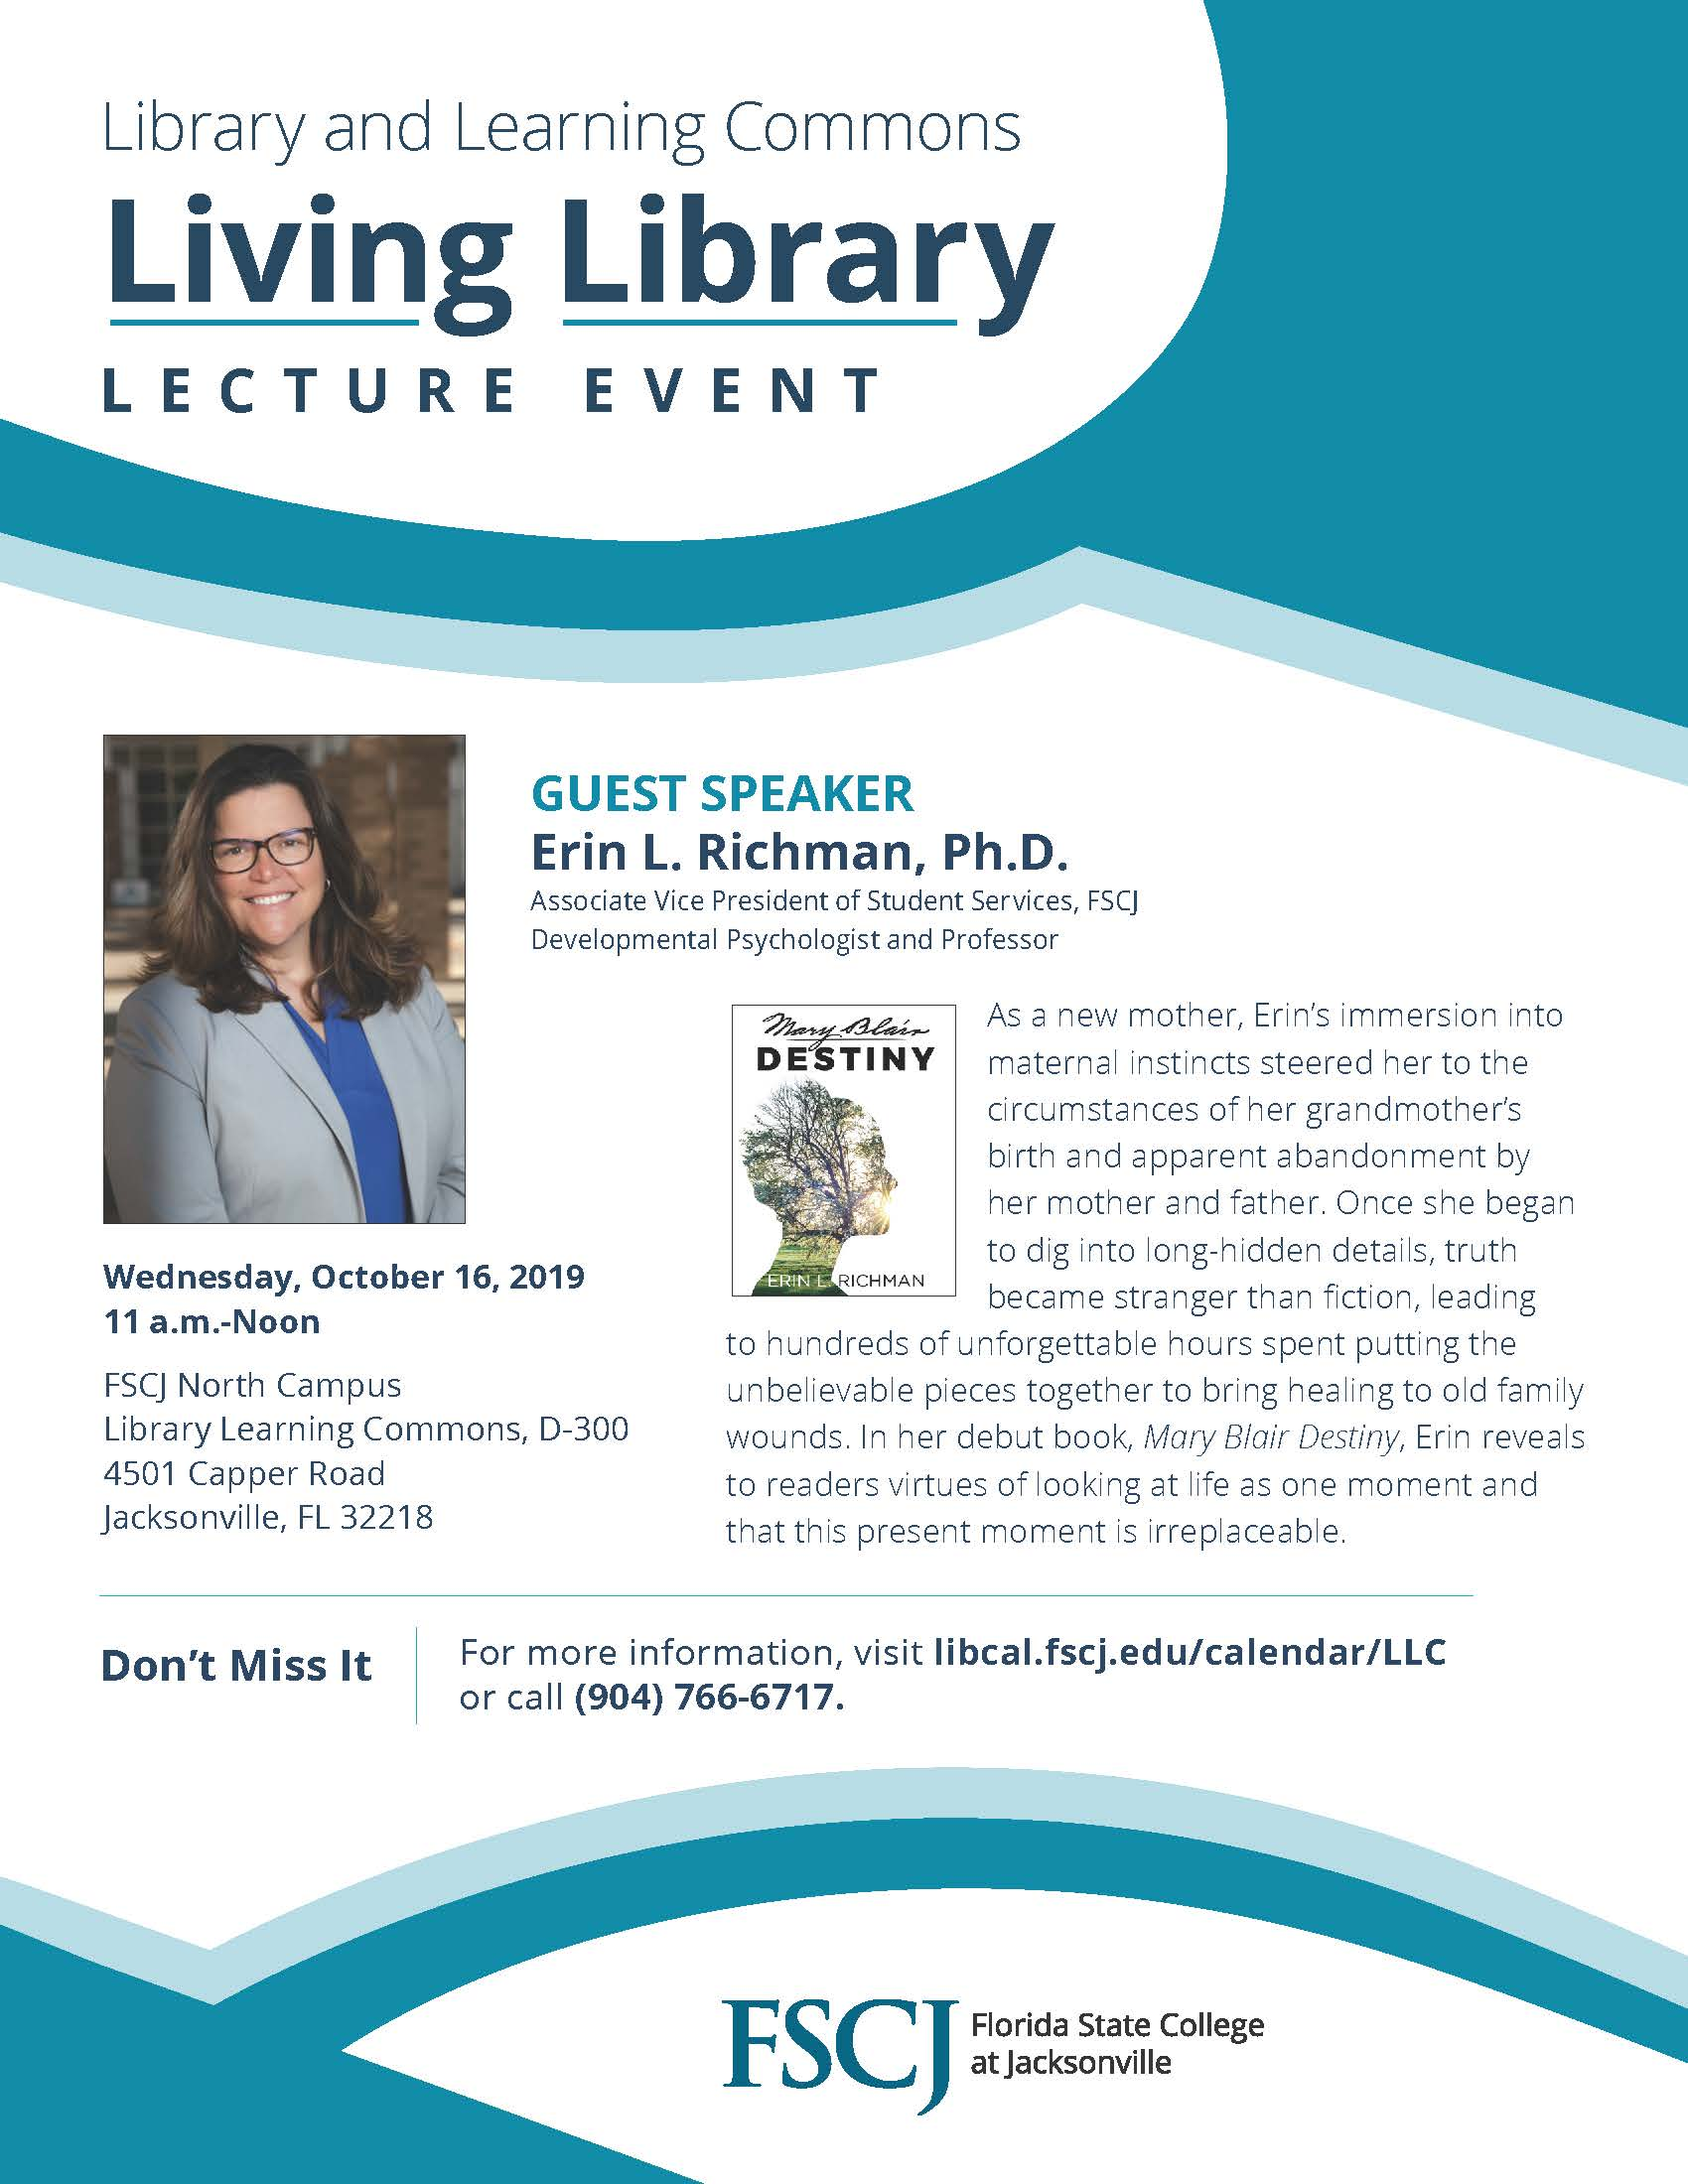 Living Library Lecture Series featuring Dr. Erin Richman